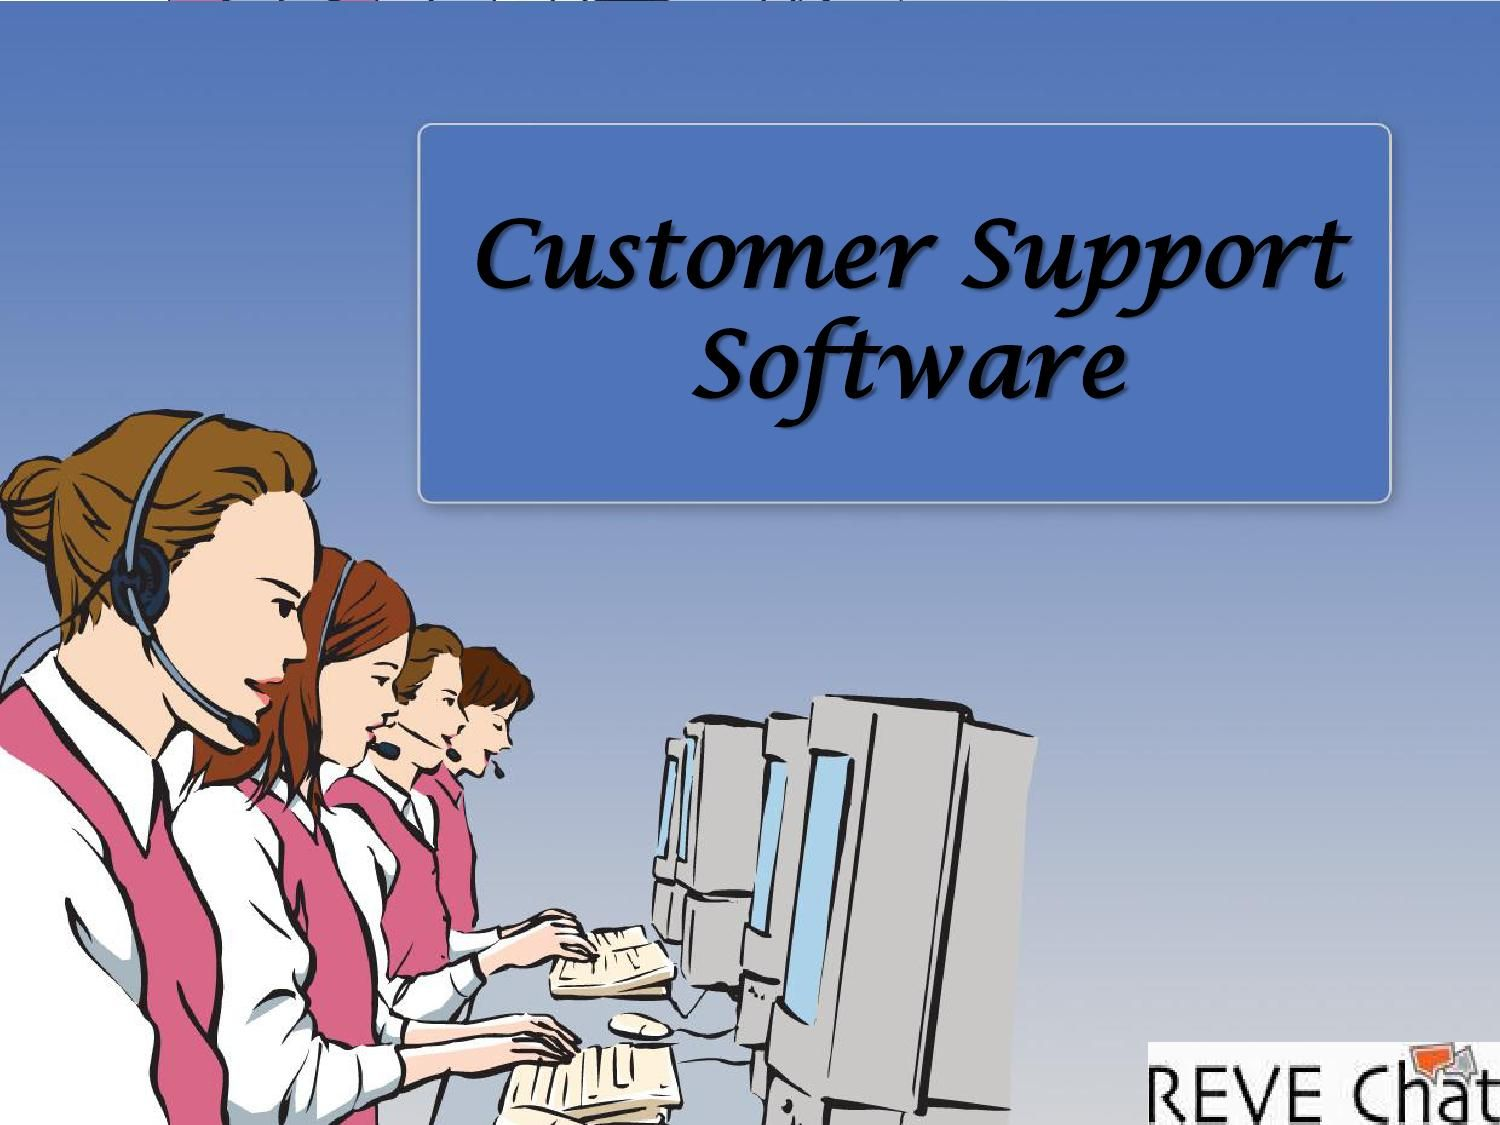 Reve chat customer support software software